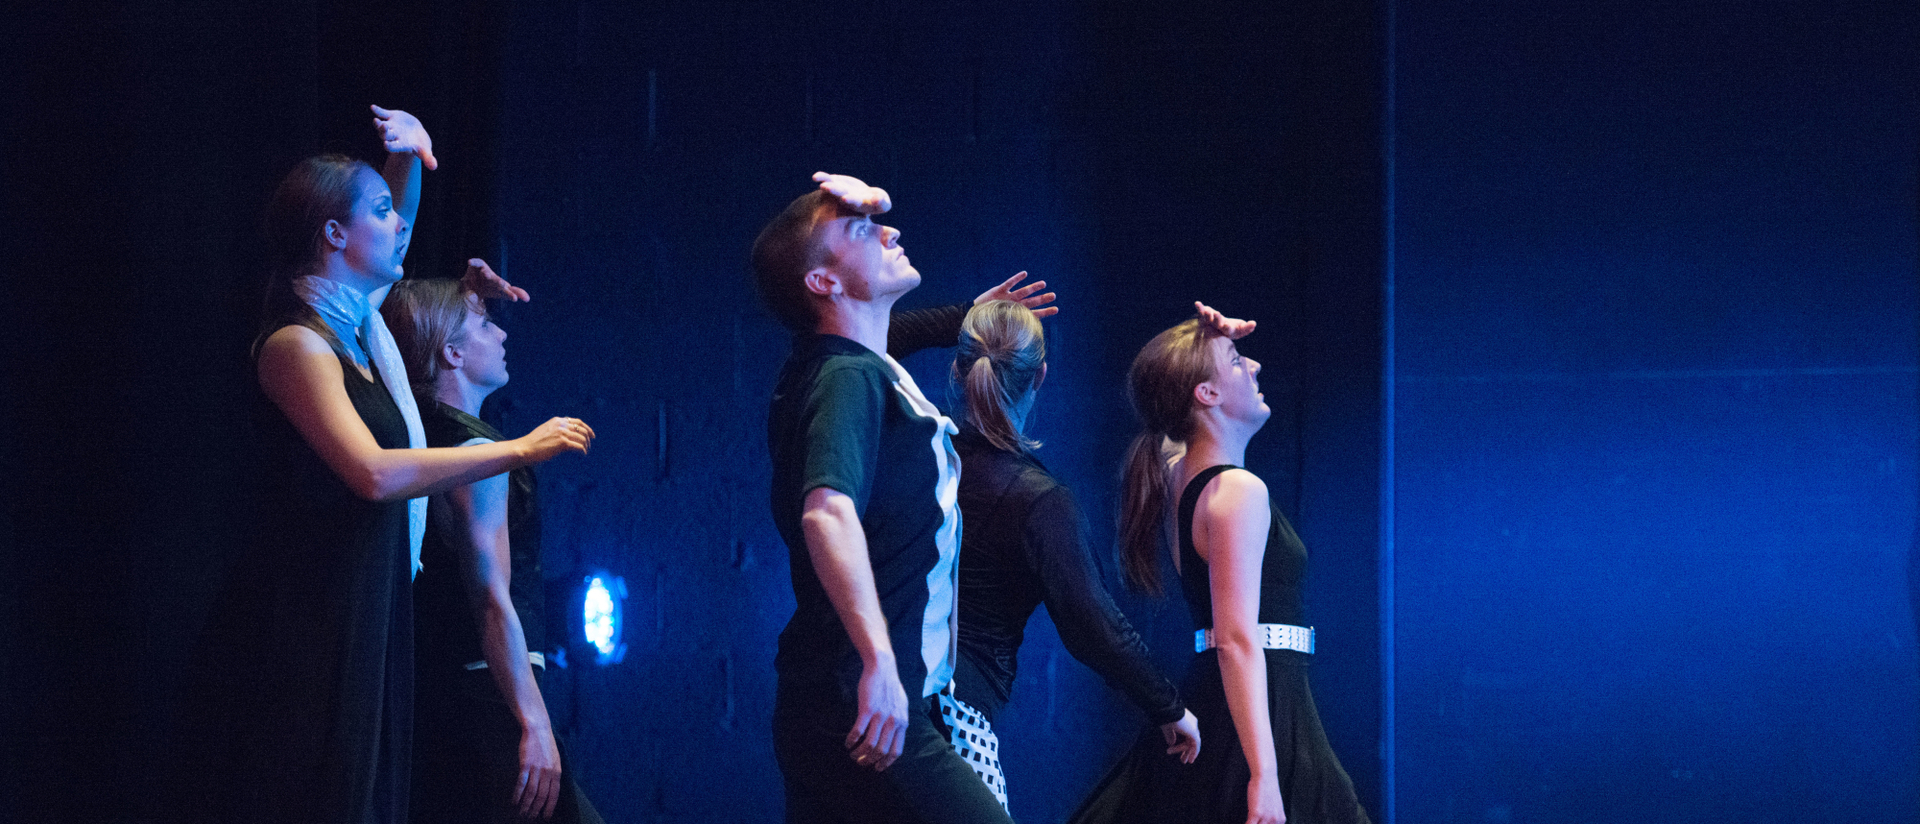 Students on stage performing at annual Danceworks show